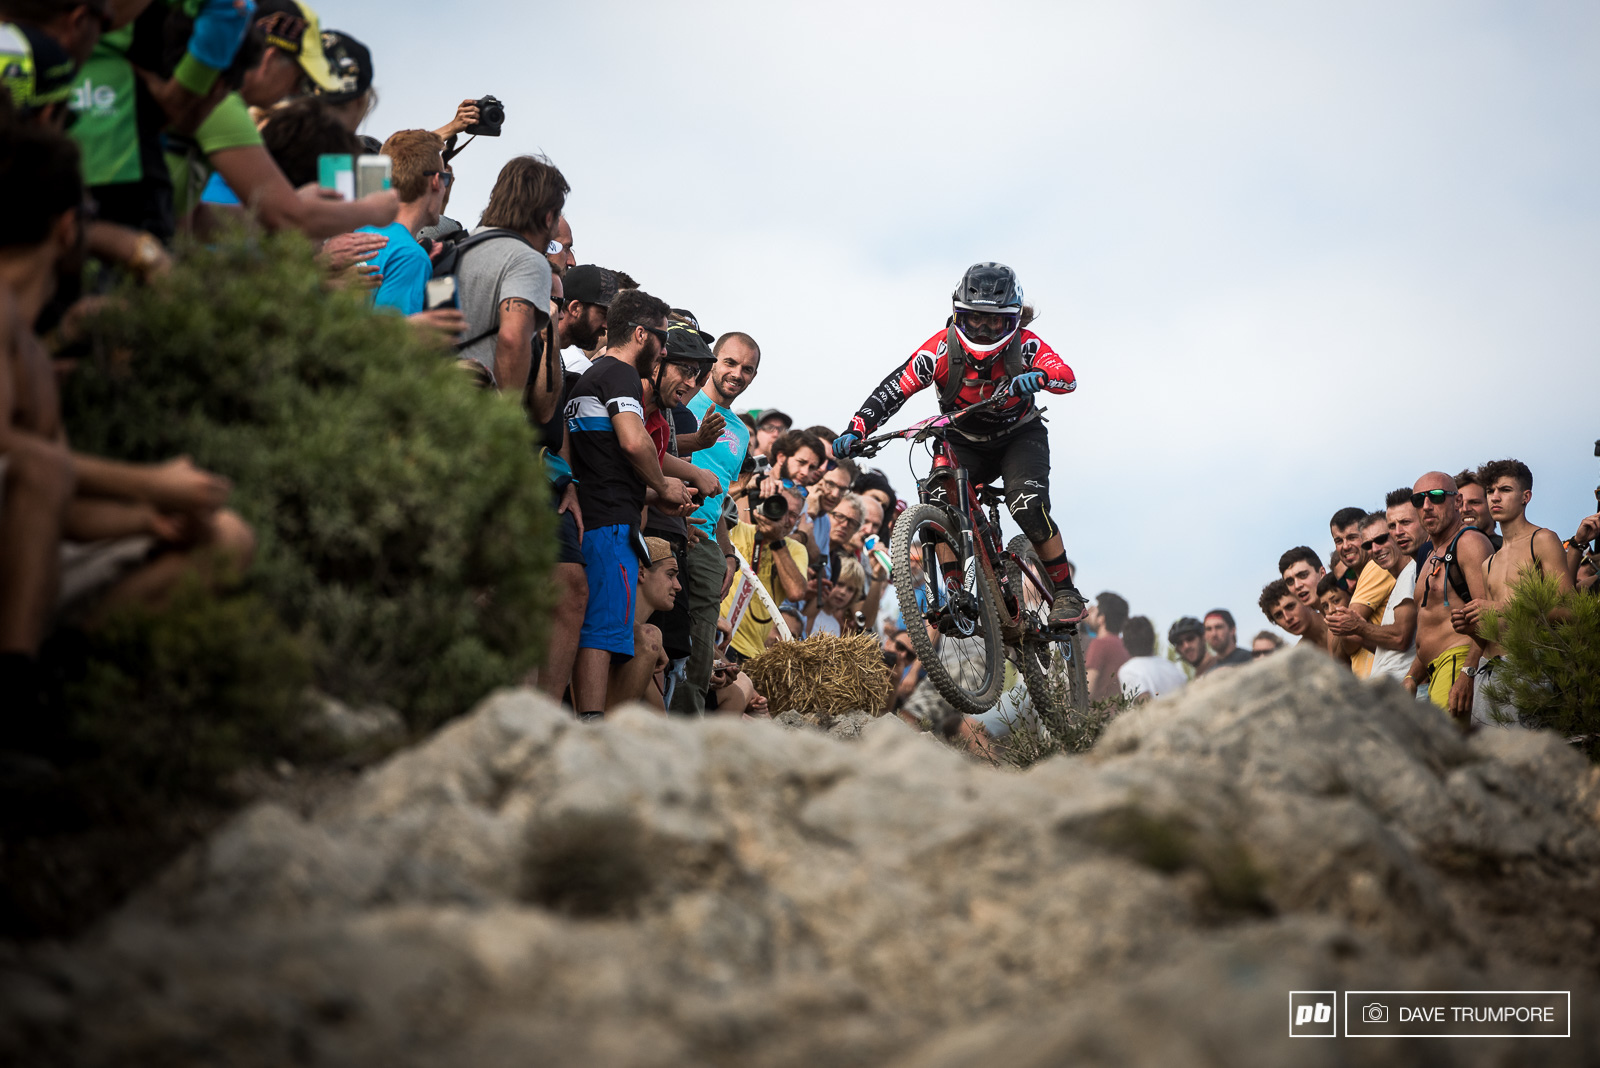 Isabeau Courdurier attacked the rocks on the final stage and would finish 2nd on the weekend.